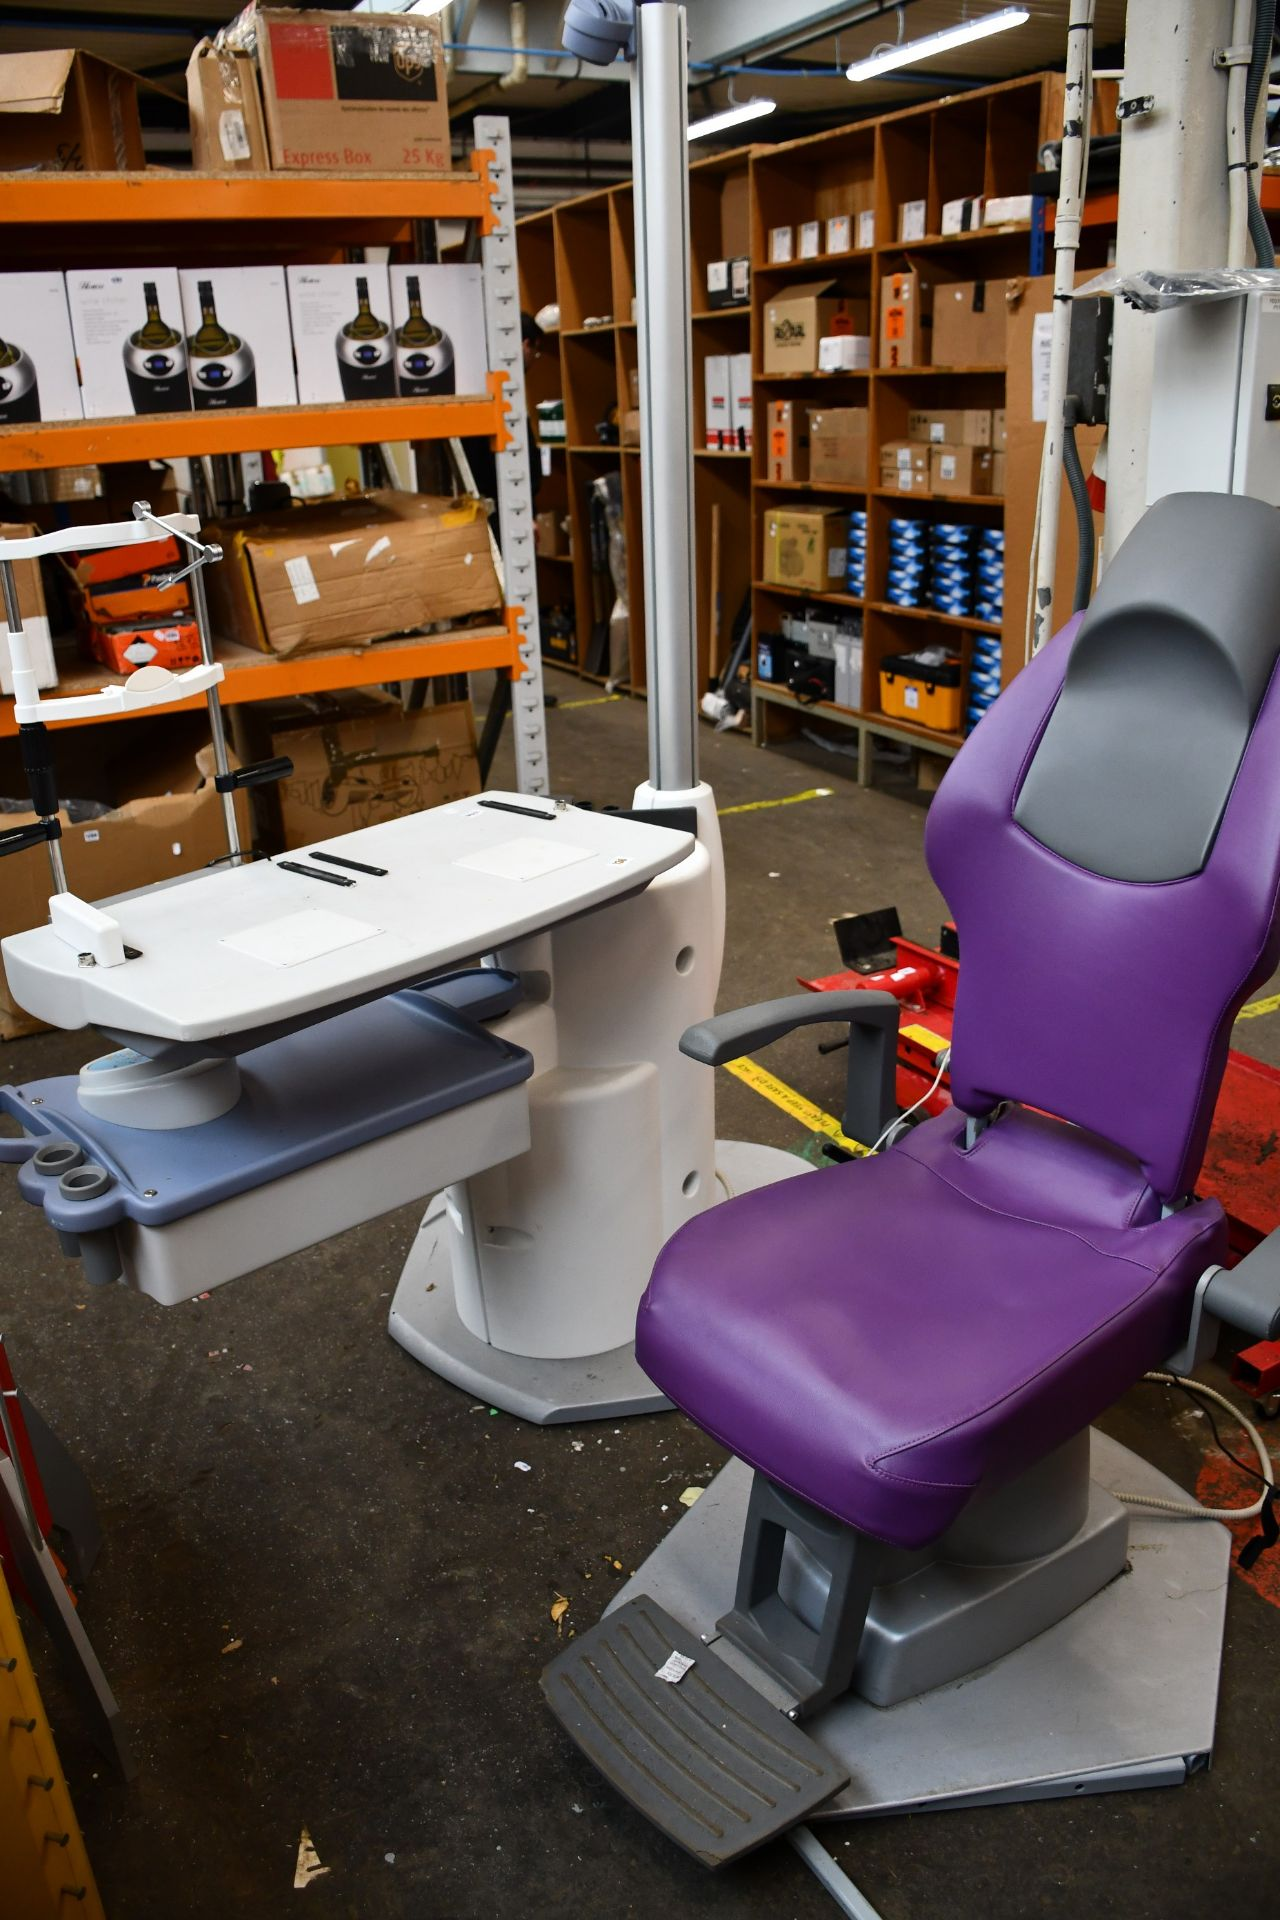 Lot 1260 - A Keeler compact refraction stand unit with chair.